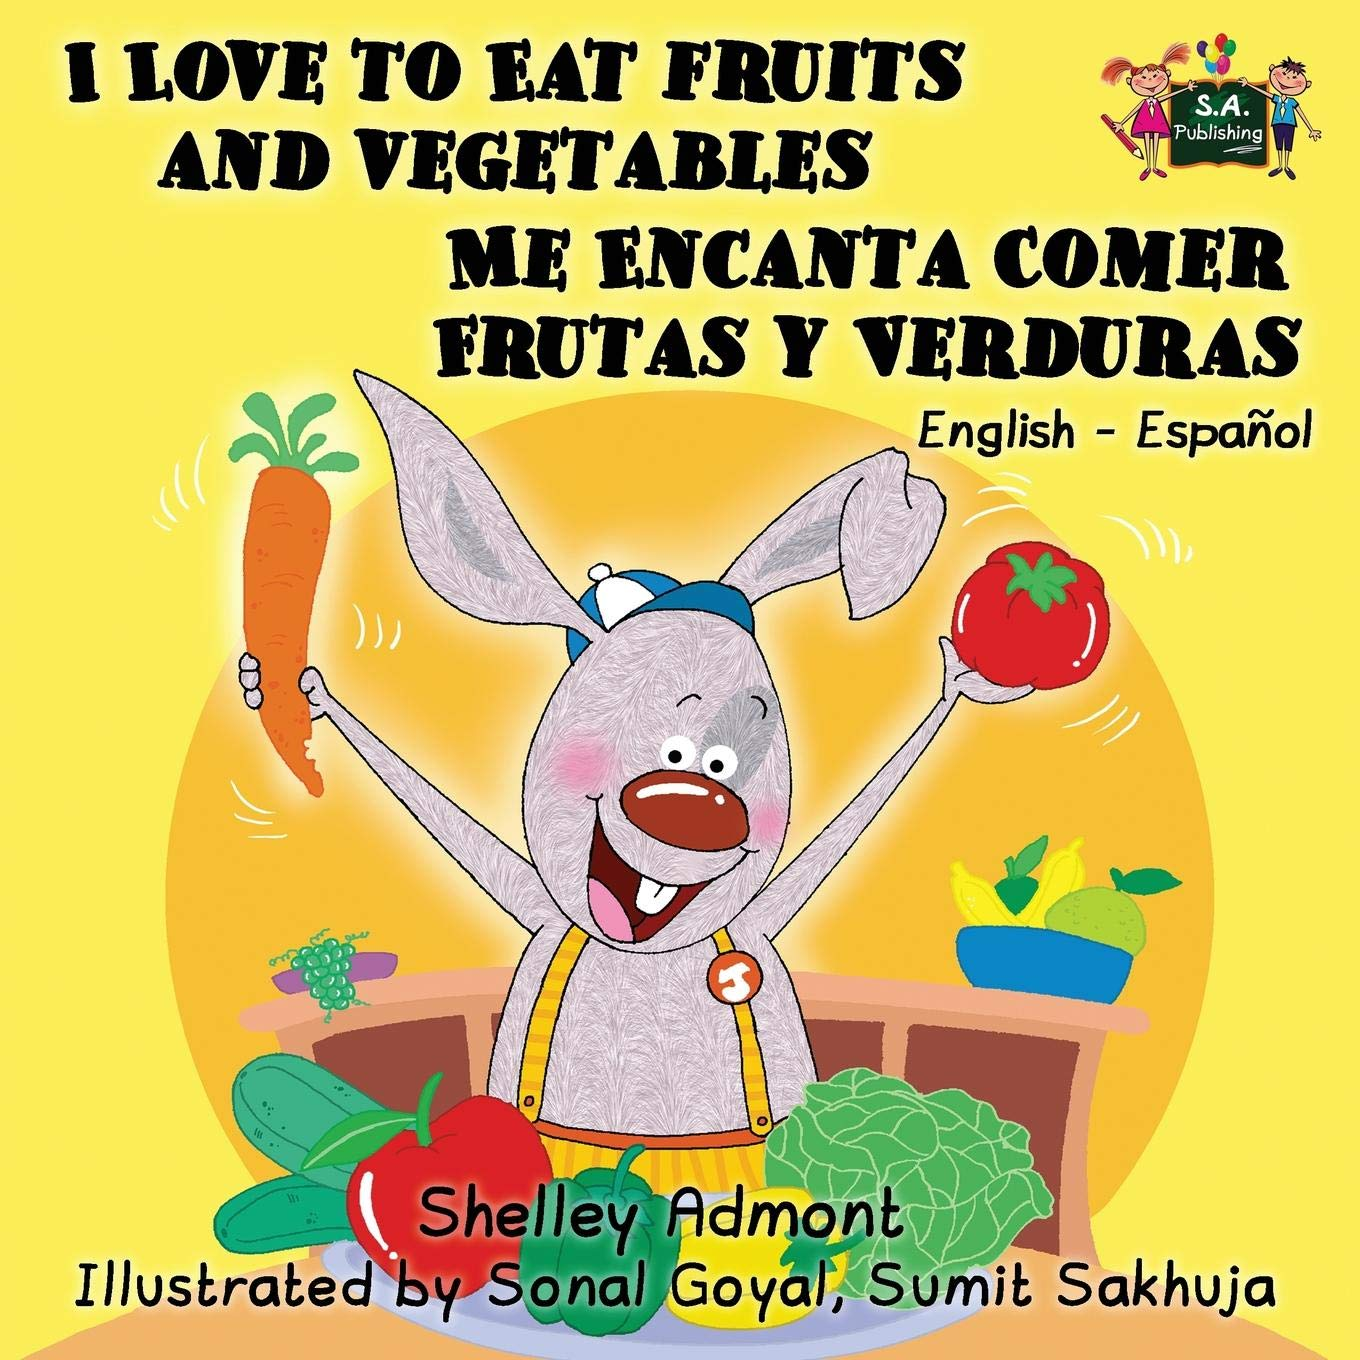 ... y Verduras: English-Spanish Bilingual book (English Spanish Bilingual Collection): Shelley Admont, KidKiddos Books: 9781926432878: Amazon.com: Books